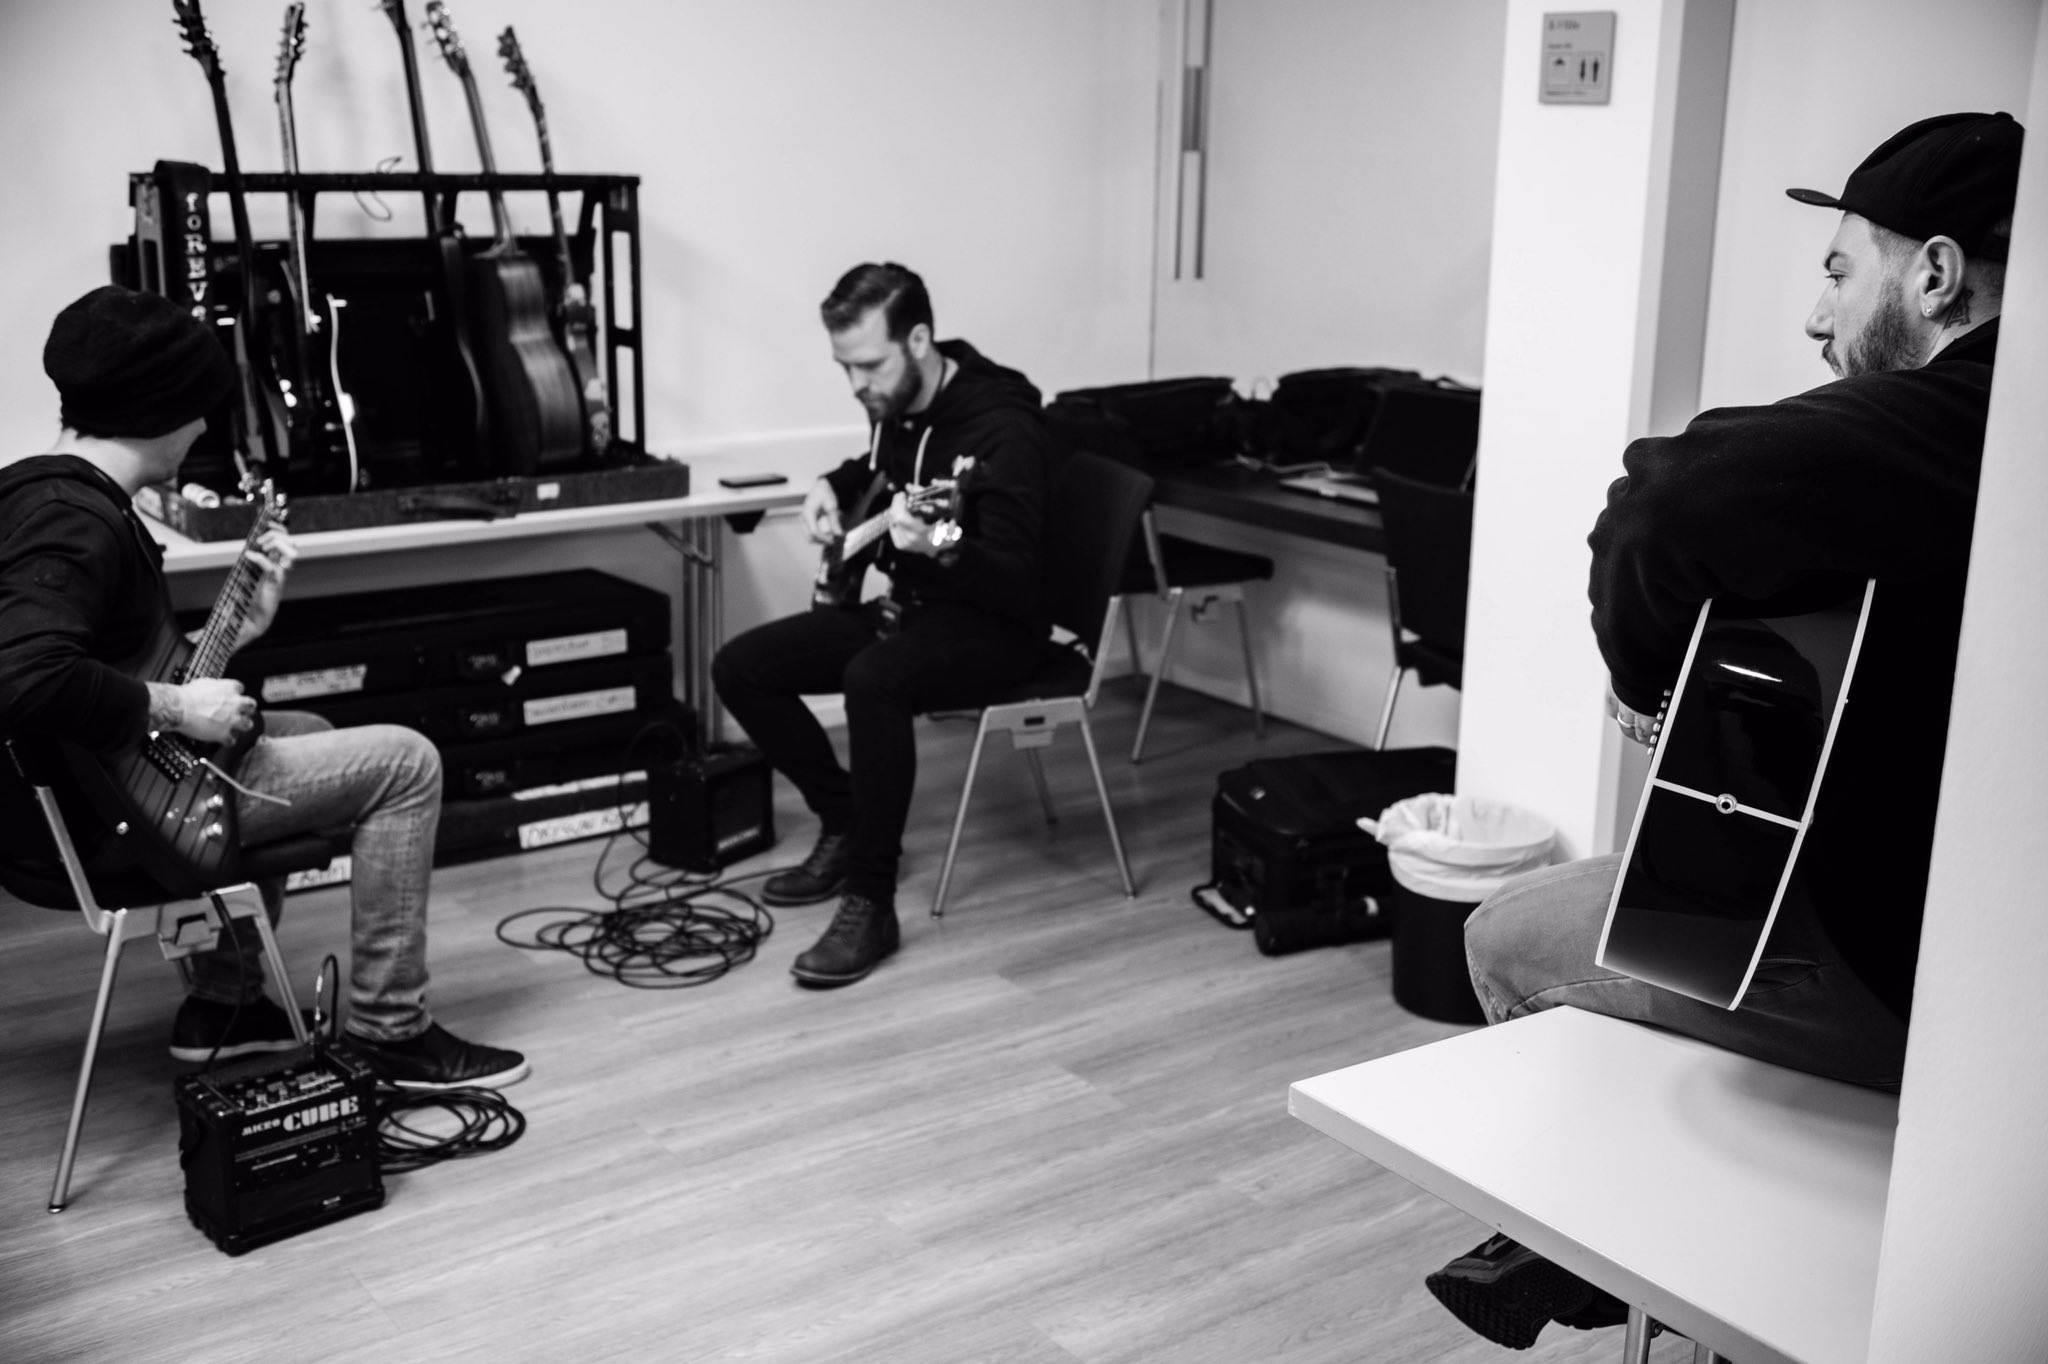 Pre Show warm up with @davestauble - Frankfurt, Germany ���� #thestageworldtour #avengedsevenfold ��: @rafacore https://t.co/9p6d7K98TH